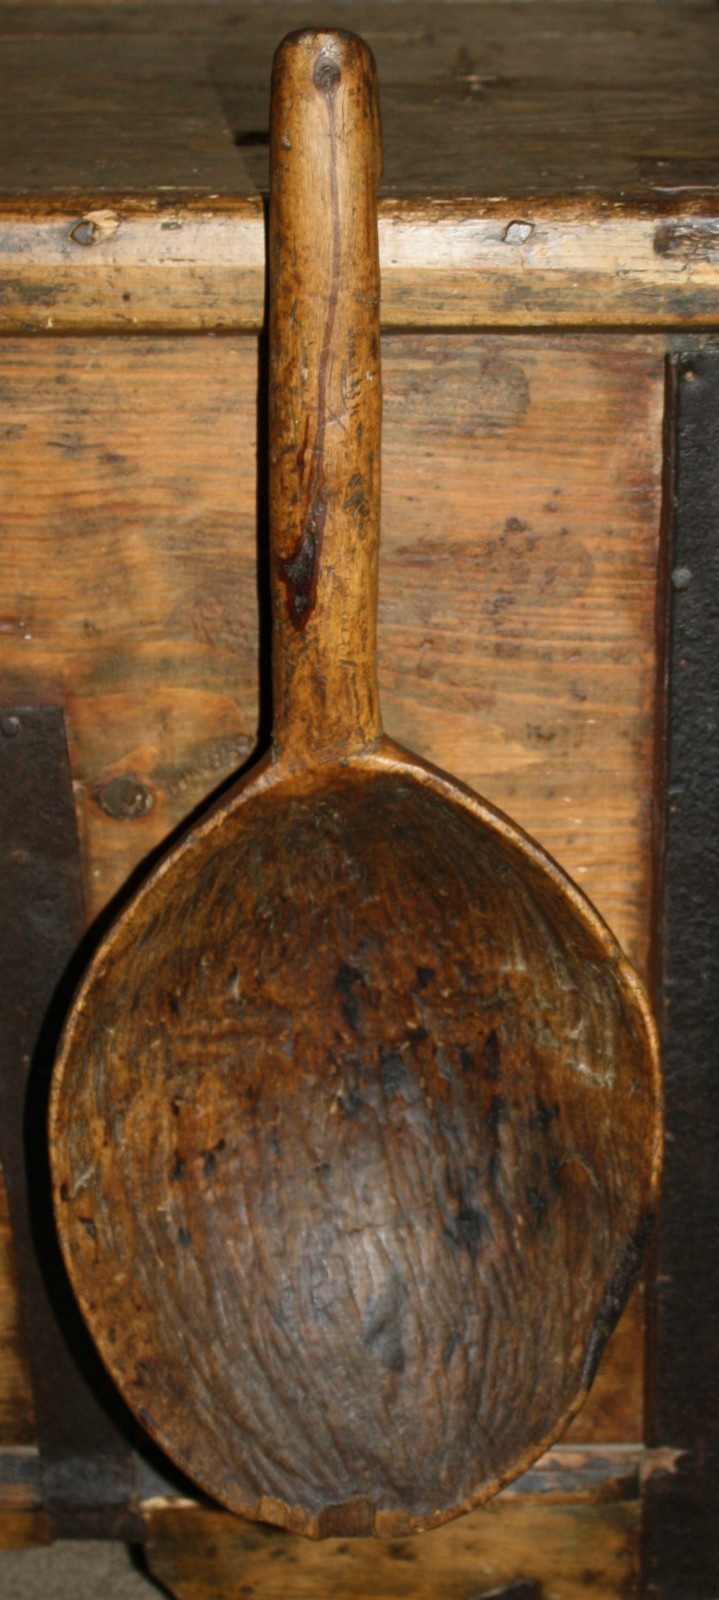 Large Antique Primitive Carved Wooden Water Dipper, 19th Century Country Ladle.Here's a beautiful, extra large, antique water dipper up for bids without reserve! It dates back to the 19th Century and was carved from a single piece of wood. The patina is old and undisturbed, we have not refinished this early piece. It still has plenty of visible carving detail along with rich, warm coloring and nice graining.sold 60.00